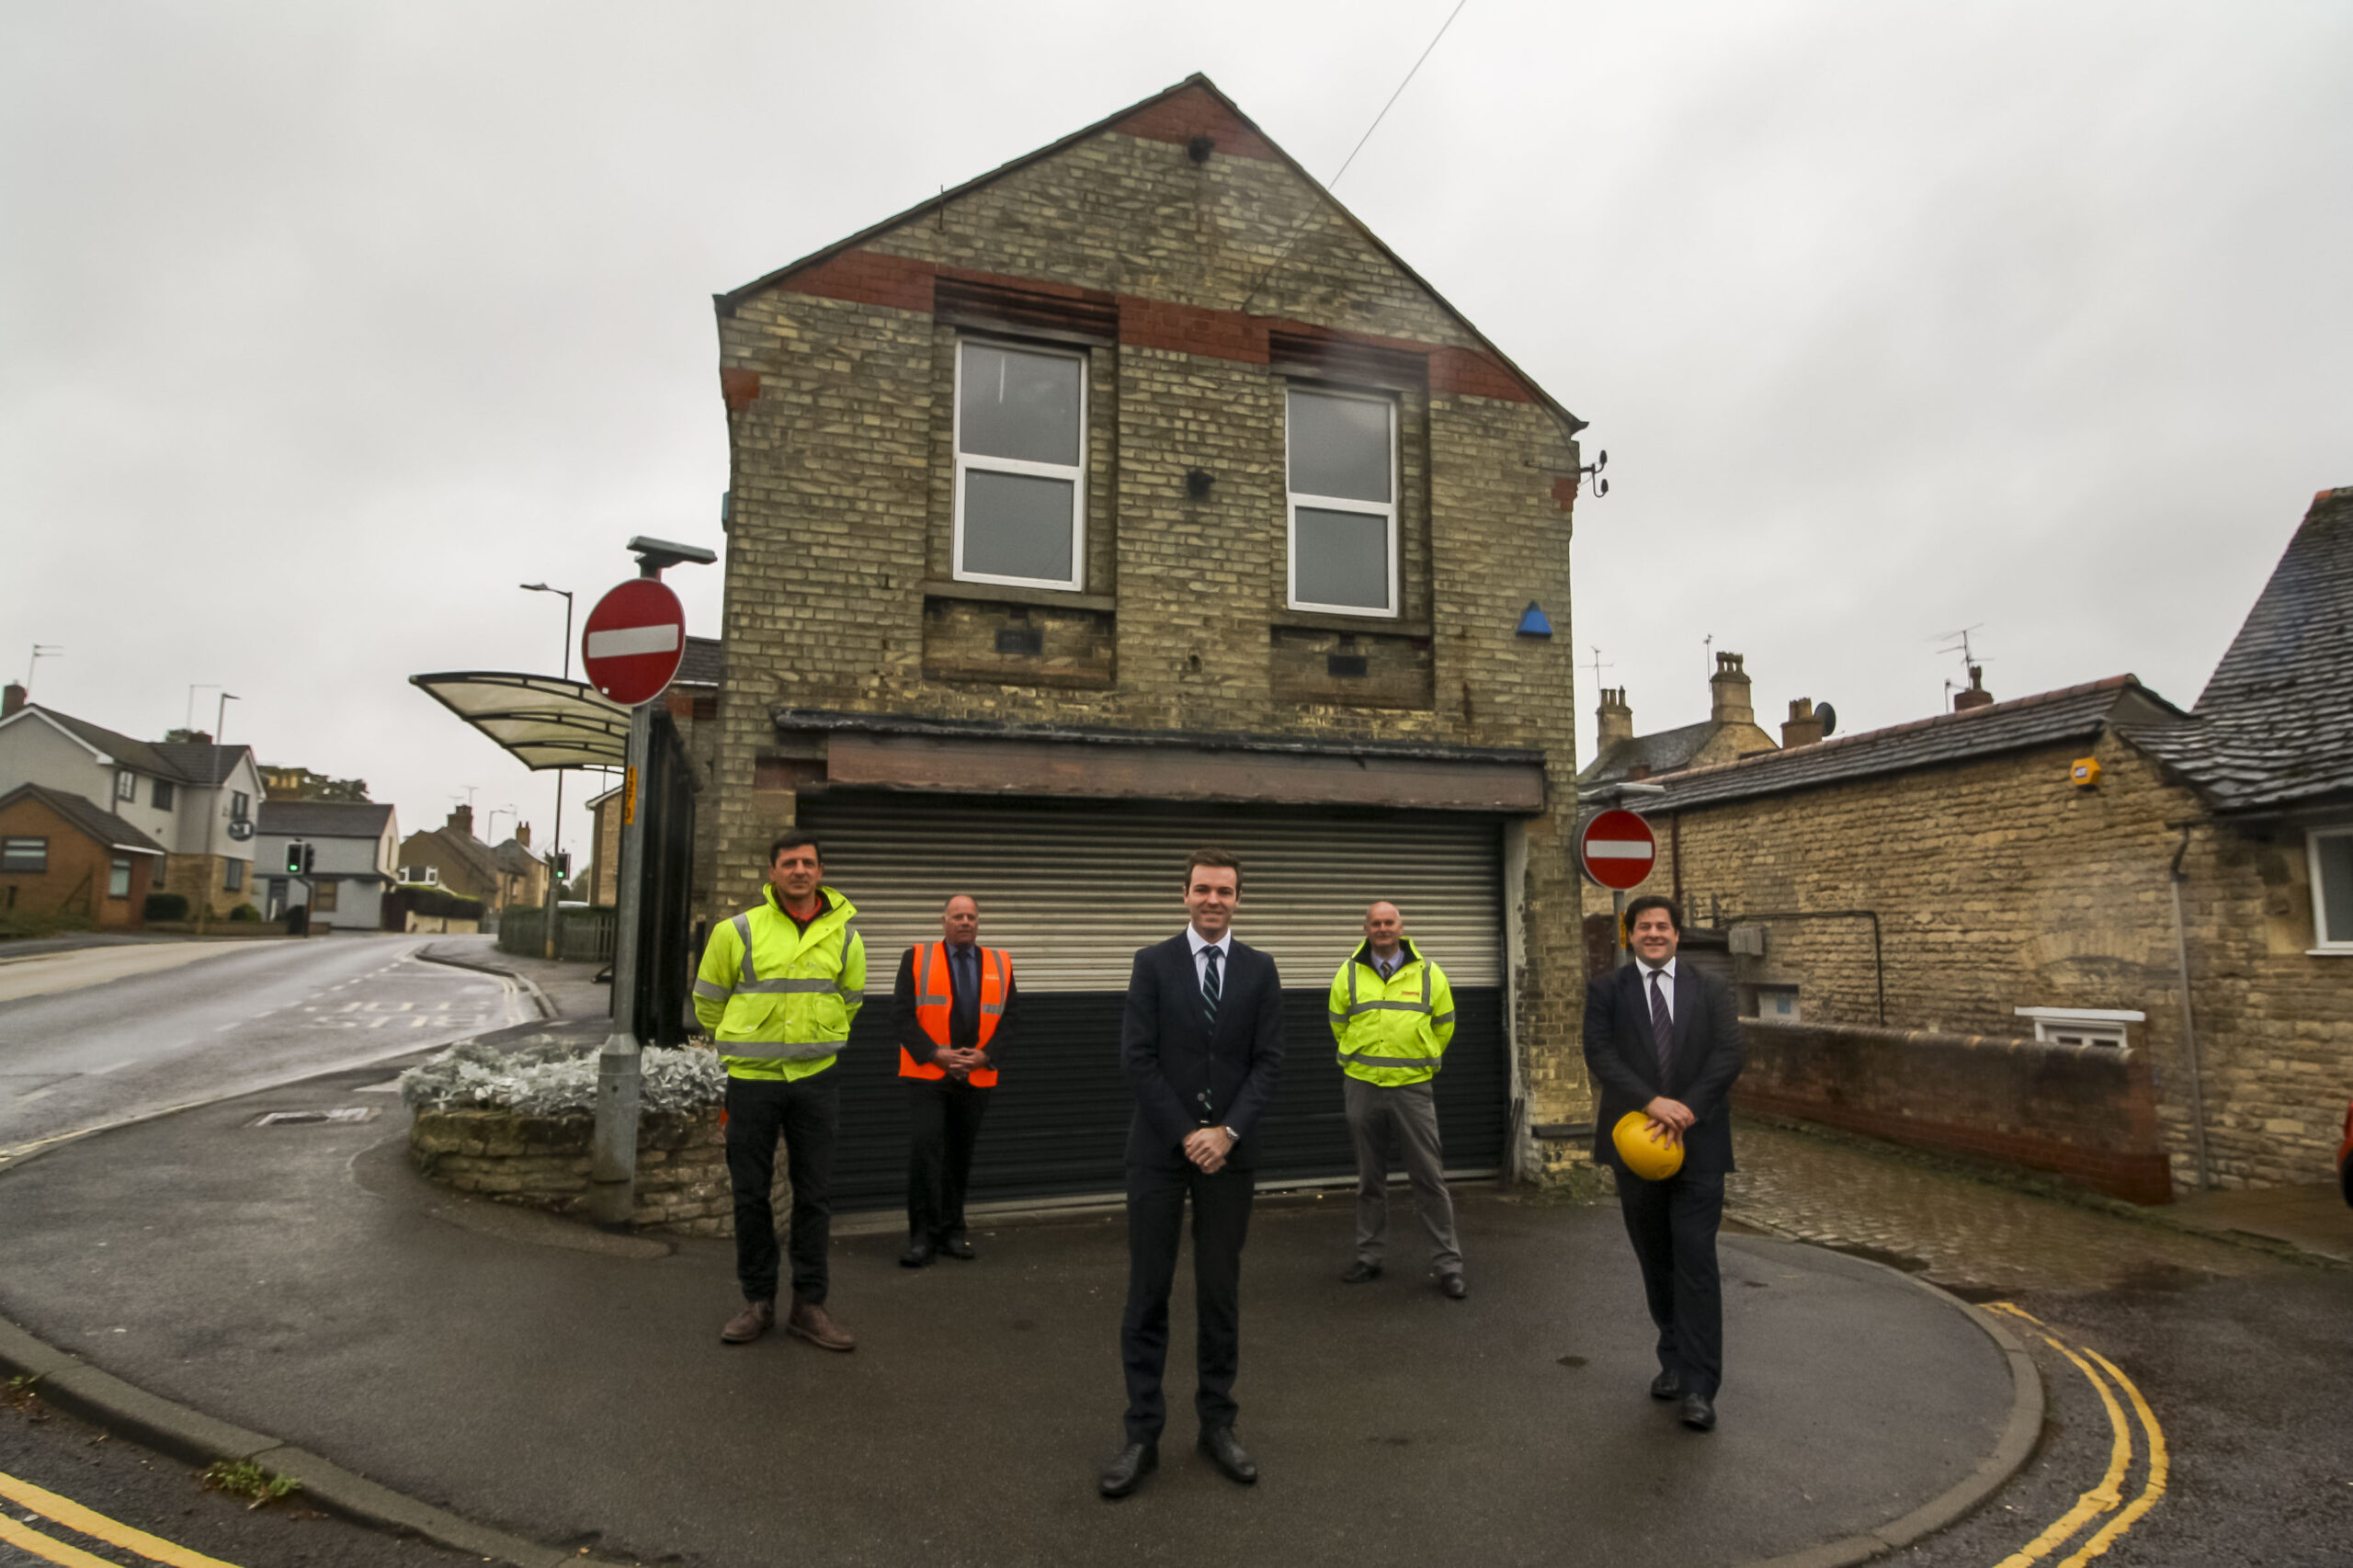 Work starts on refurbishment of Stamford's old ambulance station